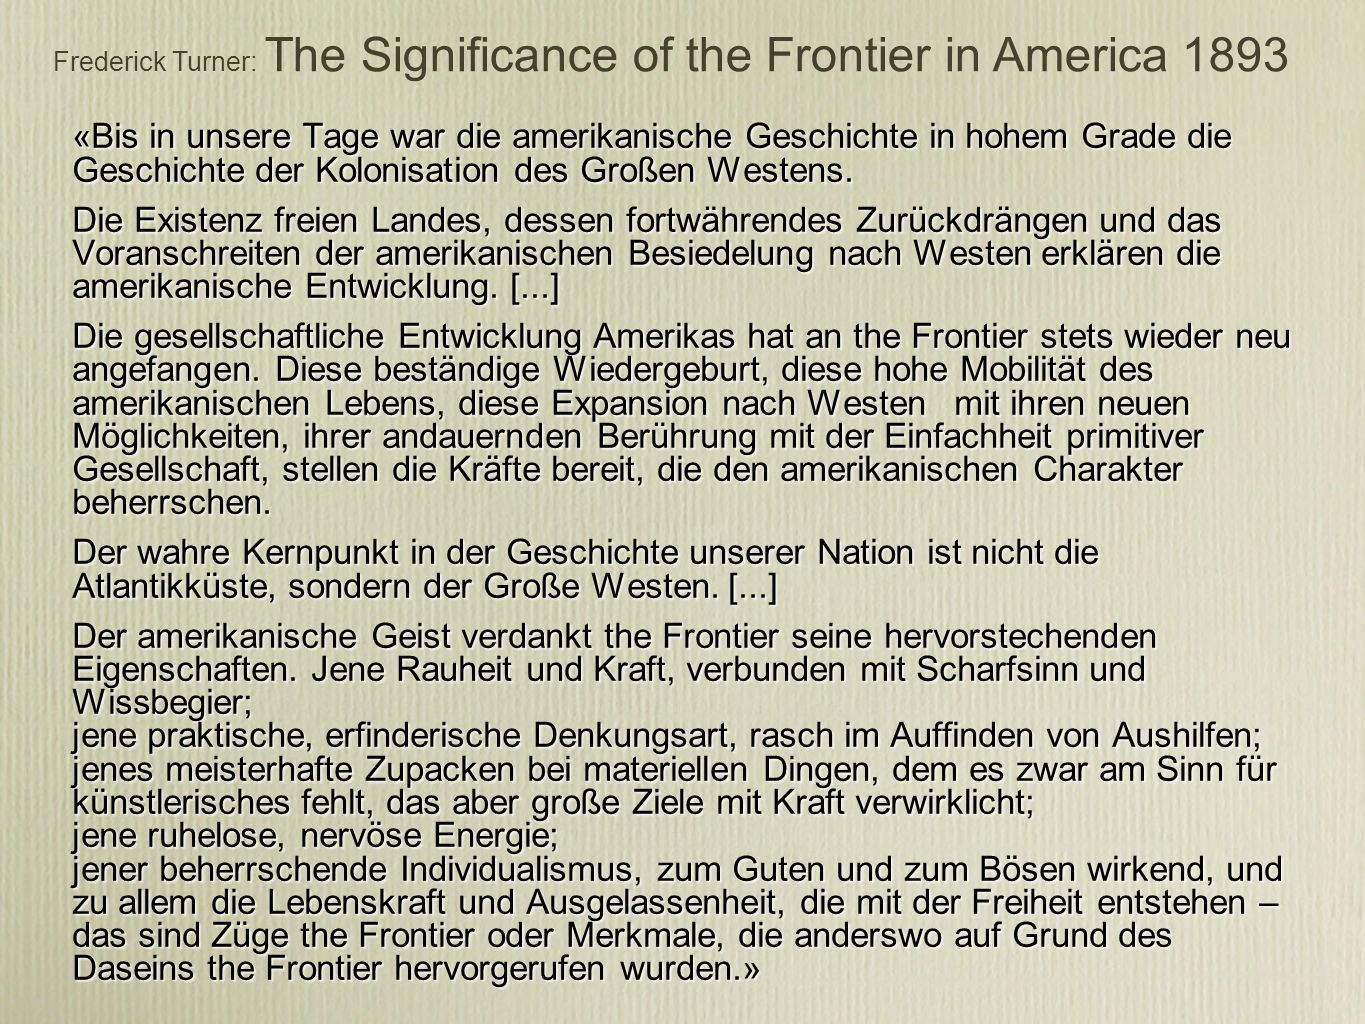 Frederick Turner: The Significance of the Frontier in America 1893